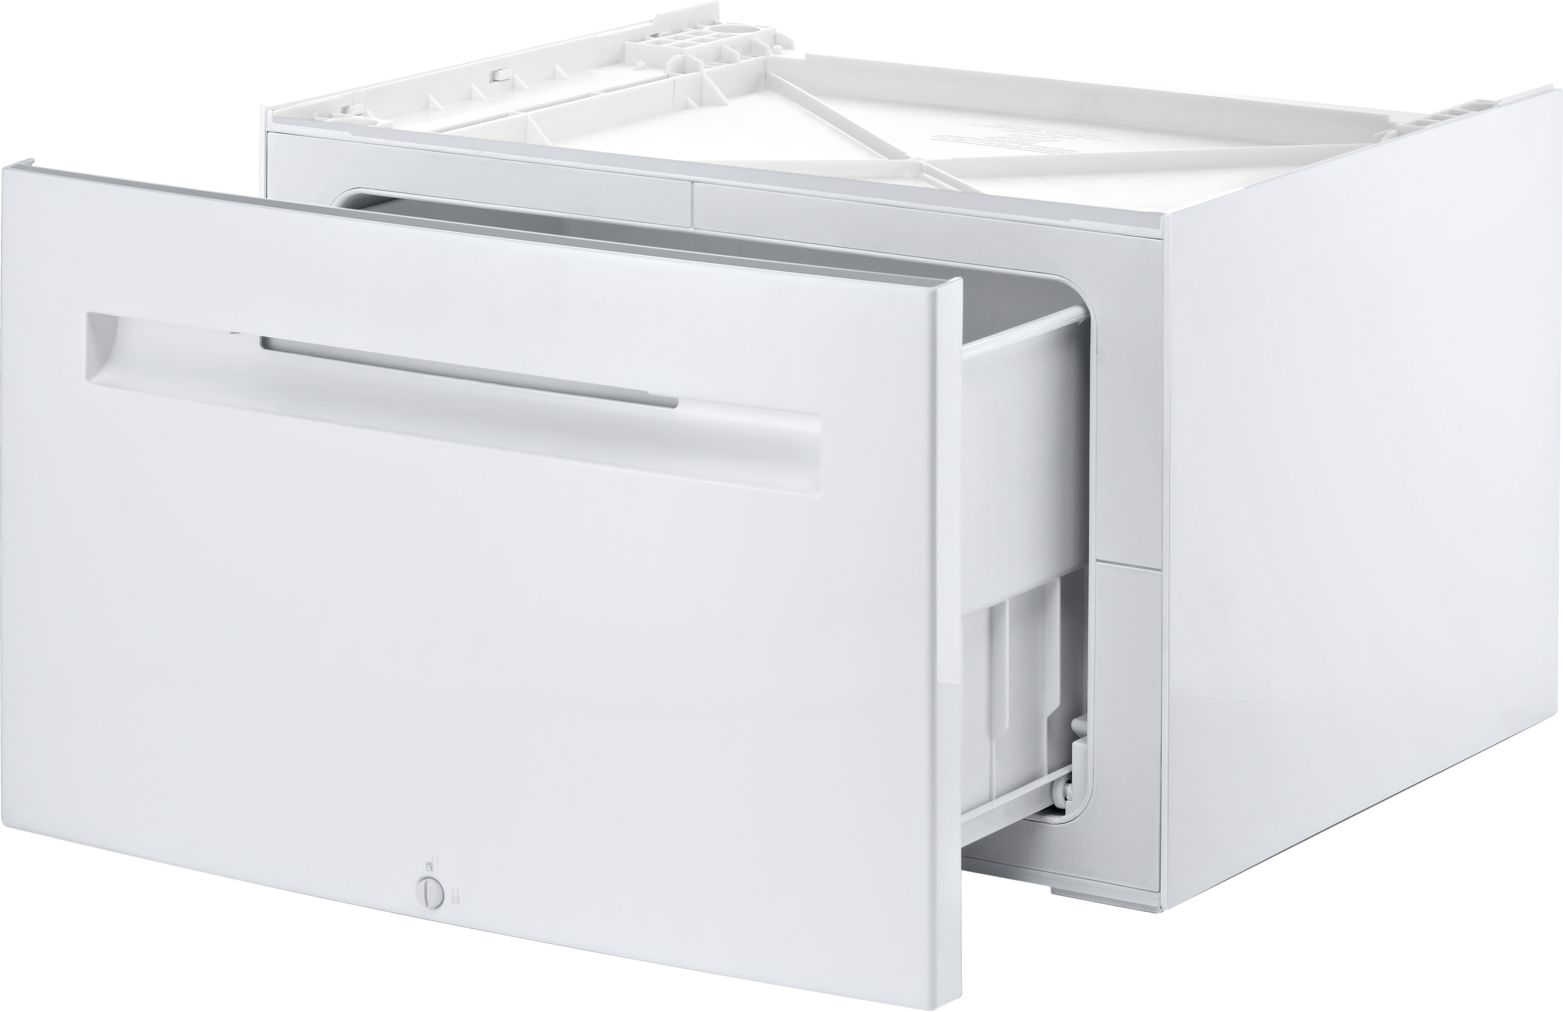 "Model: WMZ20490 | Bosch WMZ20490Platform with pull-out24"" Compact Washer"